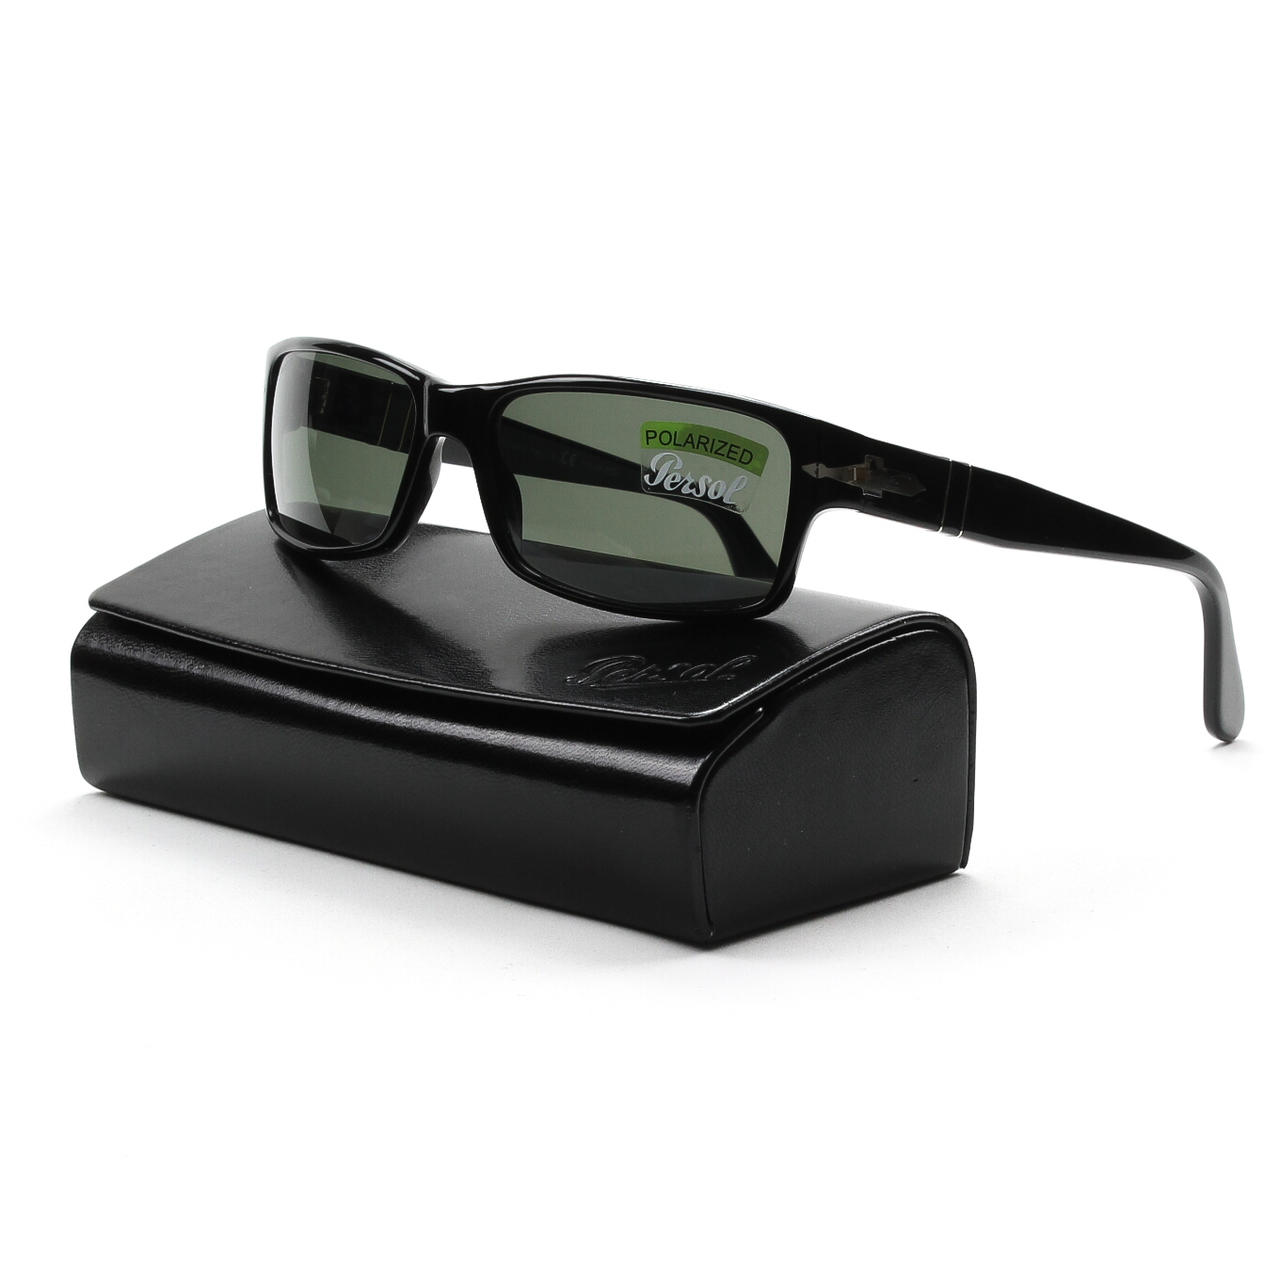 6368b7c92200 Persol PO2747S 95/48 Sunglasses Black from TheAspecs | Summer